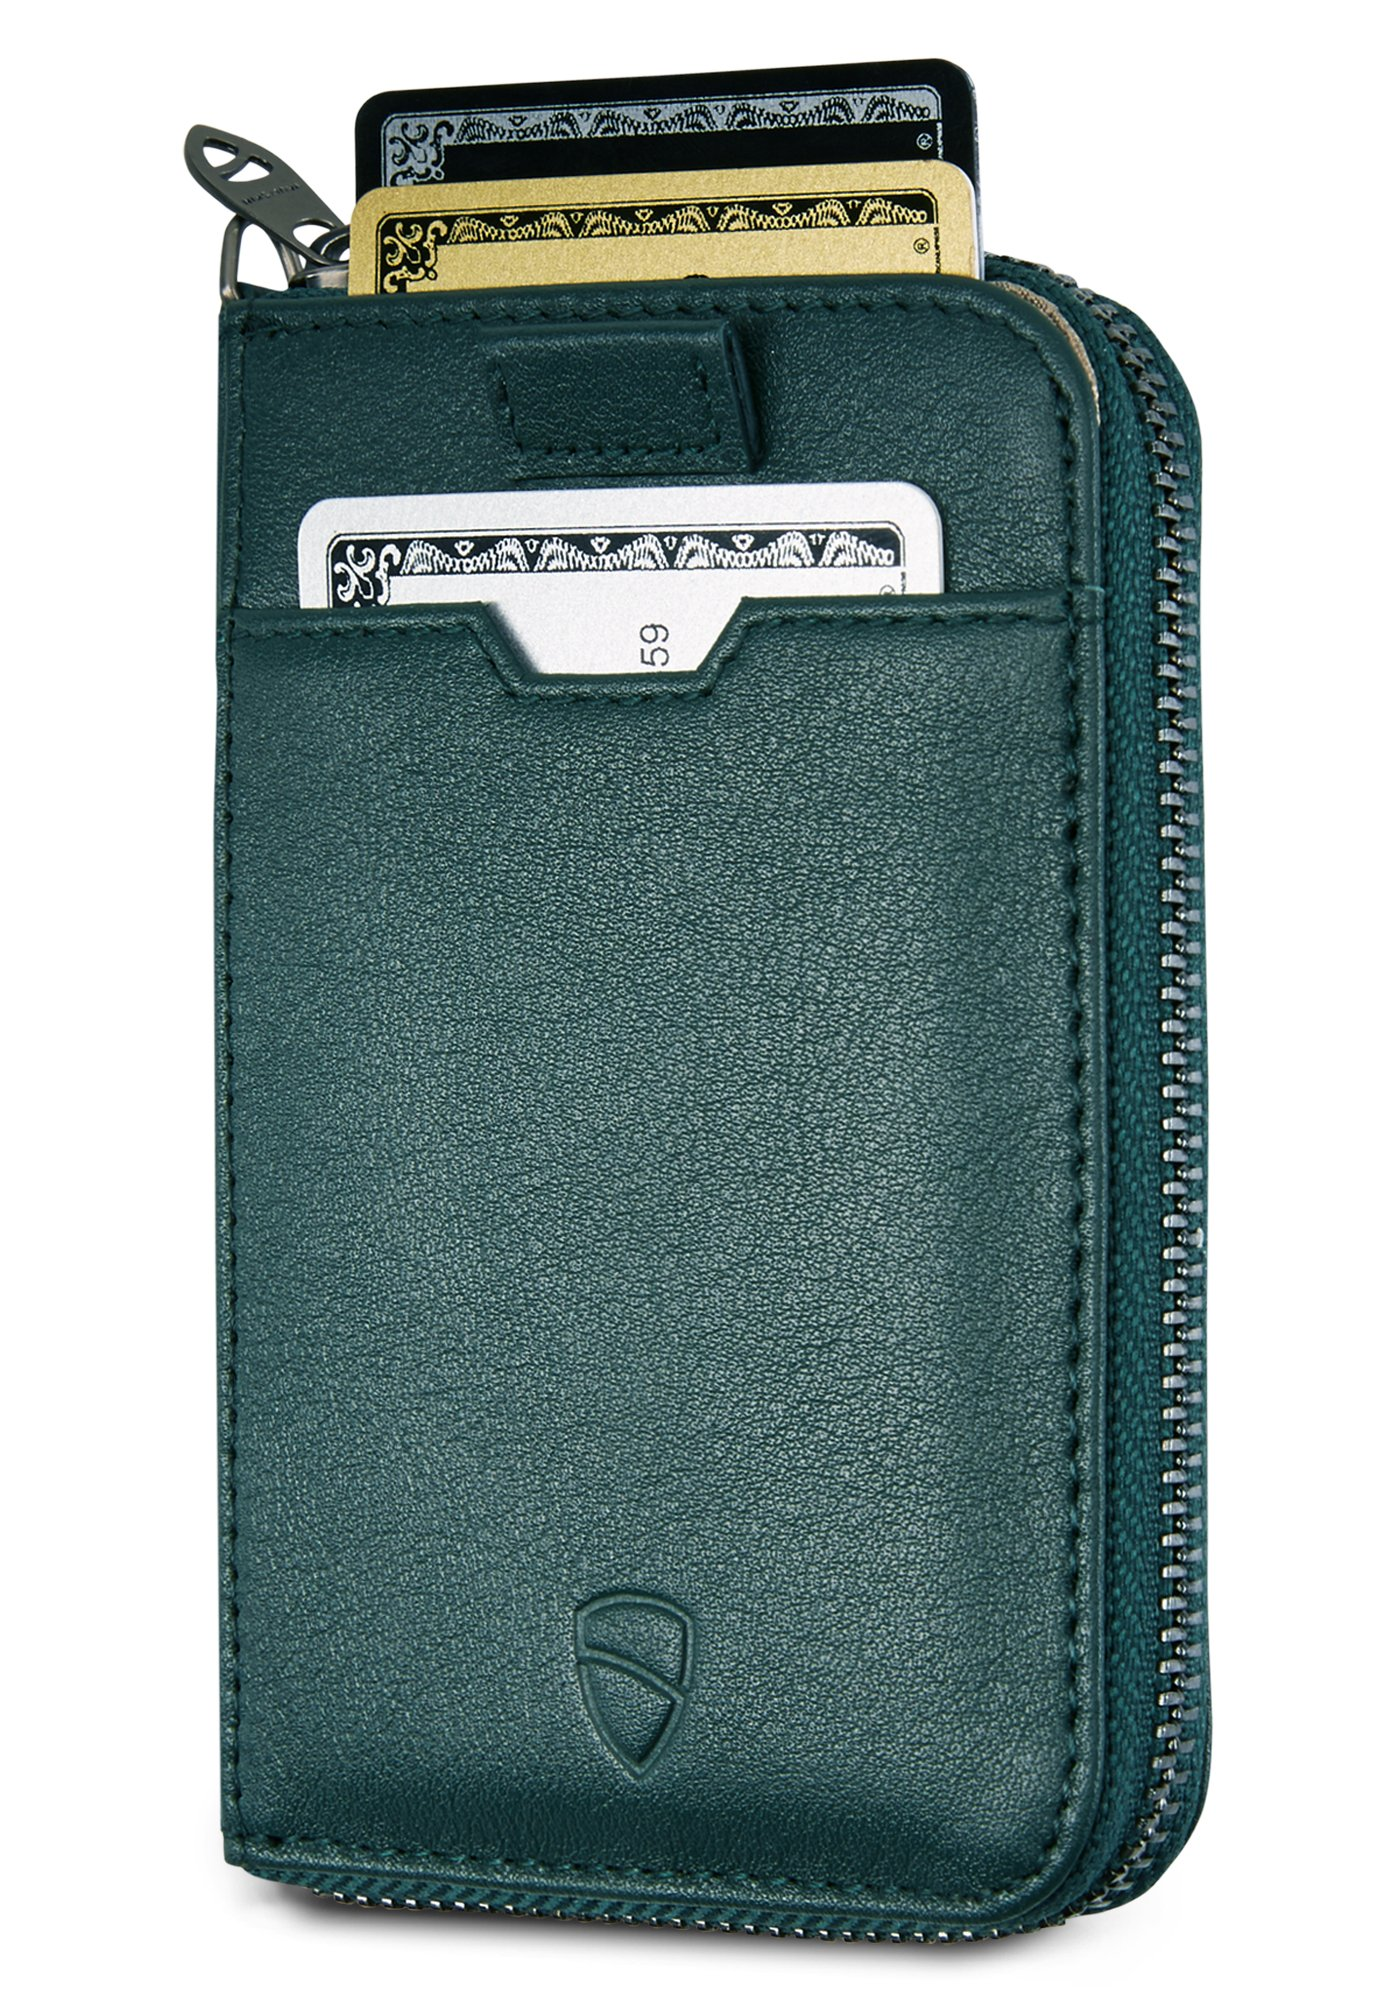 Vaultskin NOTTING HILL Slim Zip Wallet with RFID Protection for Cards Cash Coins (Alpine Green)